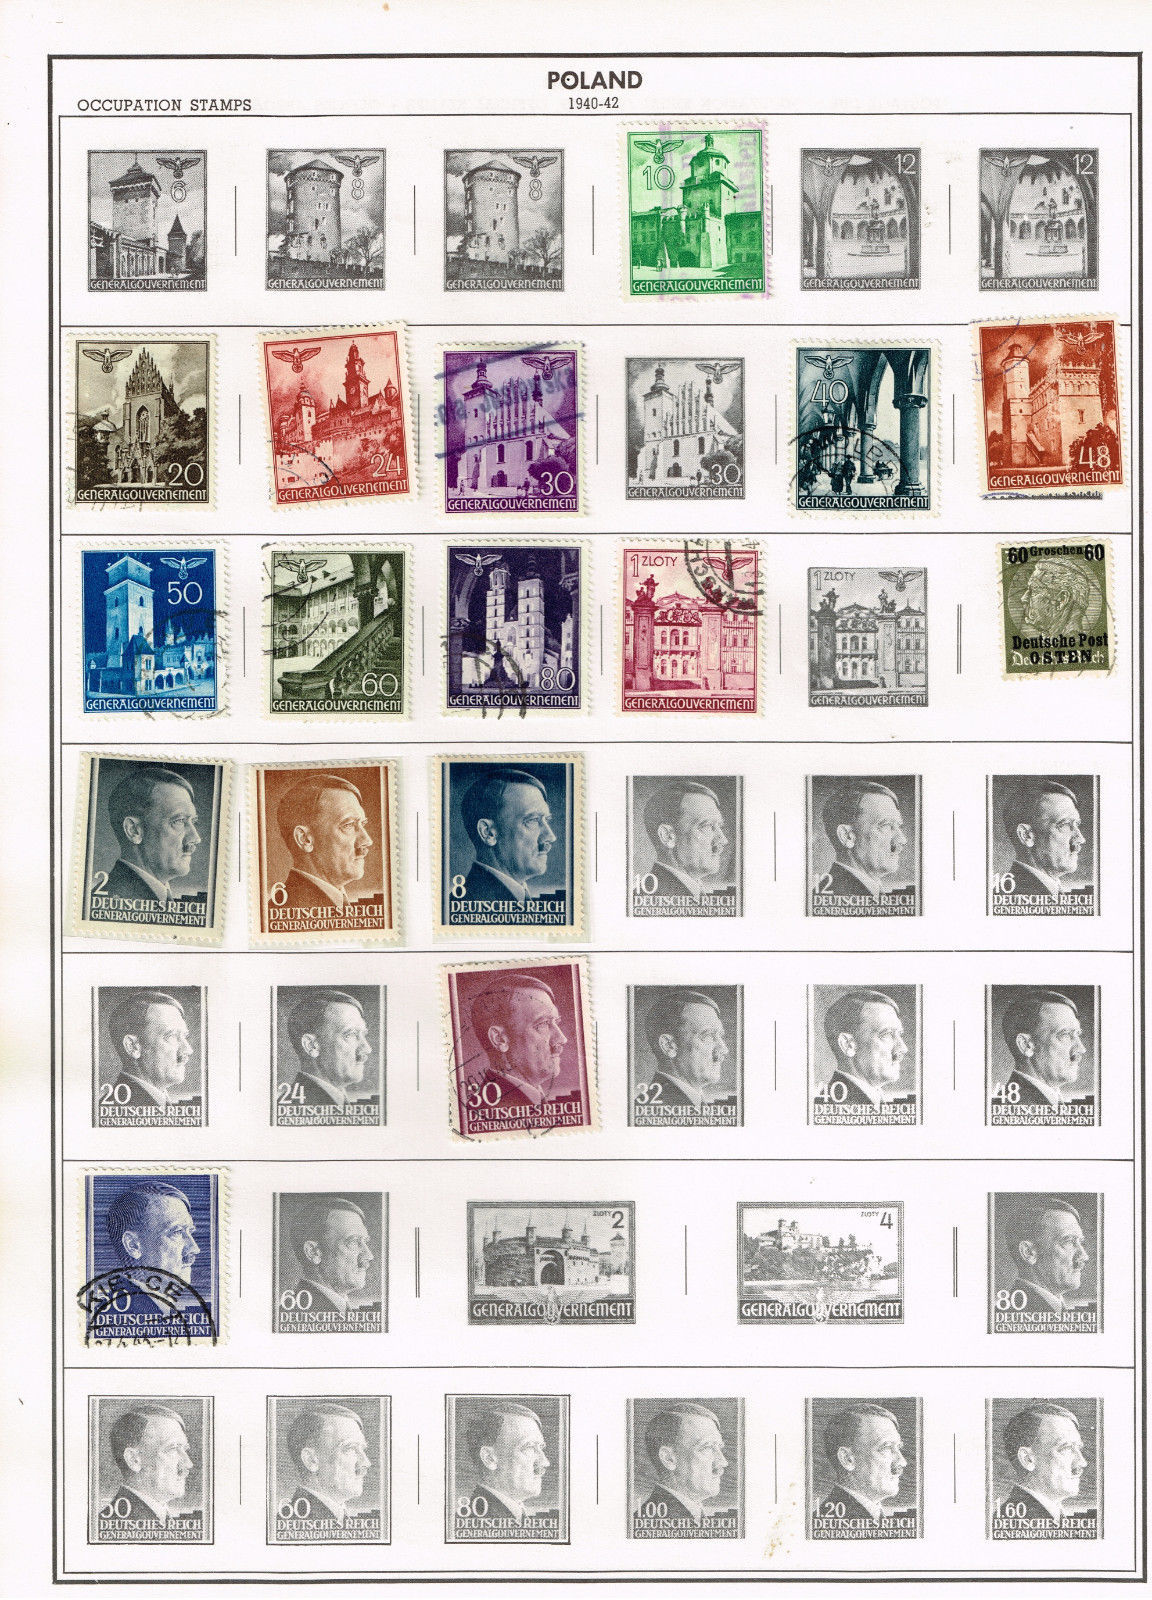 31 Poland 1940-1944  stamps - occupation